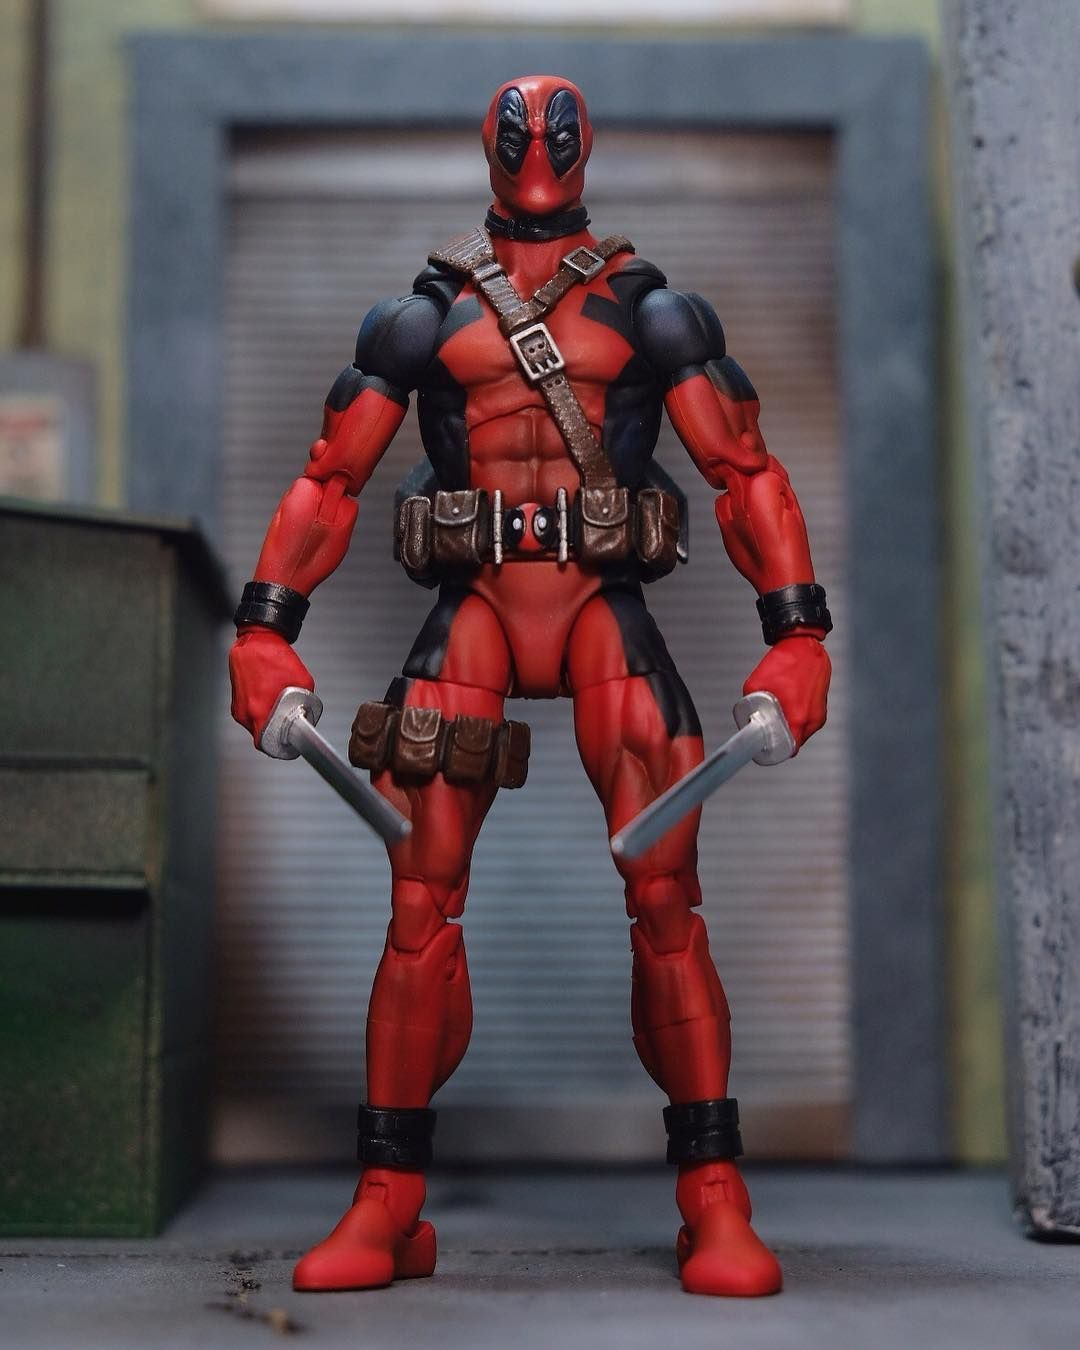 Joshua Adrian Aristoza On Instagram Custom 90s Deadpool Repaint And Mods This Project Was A Repaint Of The Marvel Legends 90s Figuras De Accion Figuras De